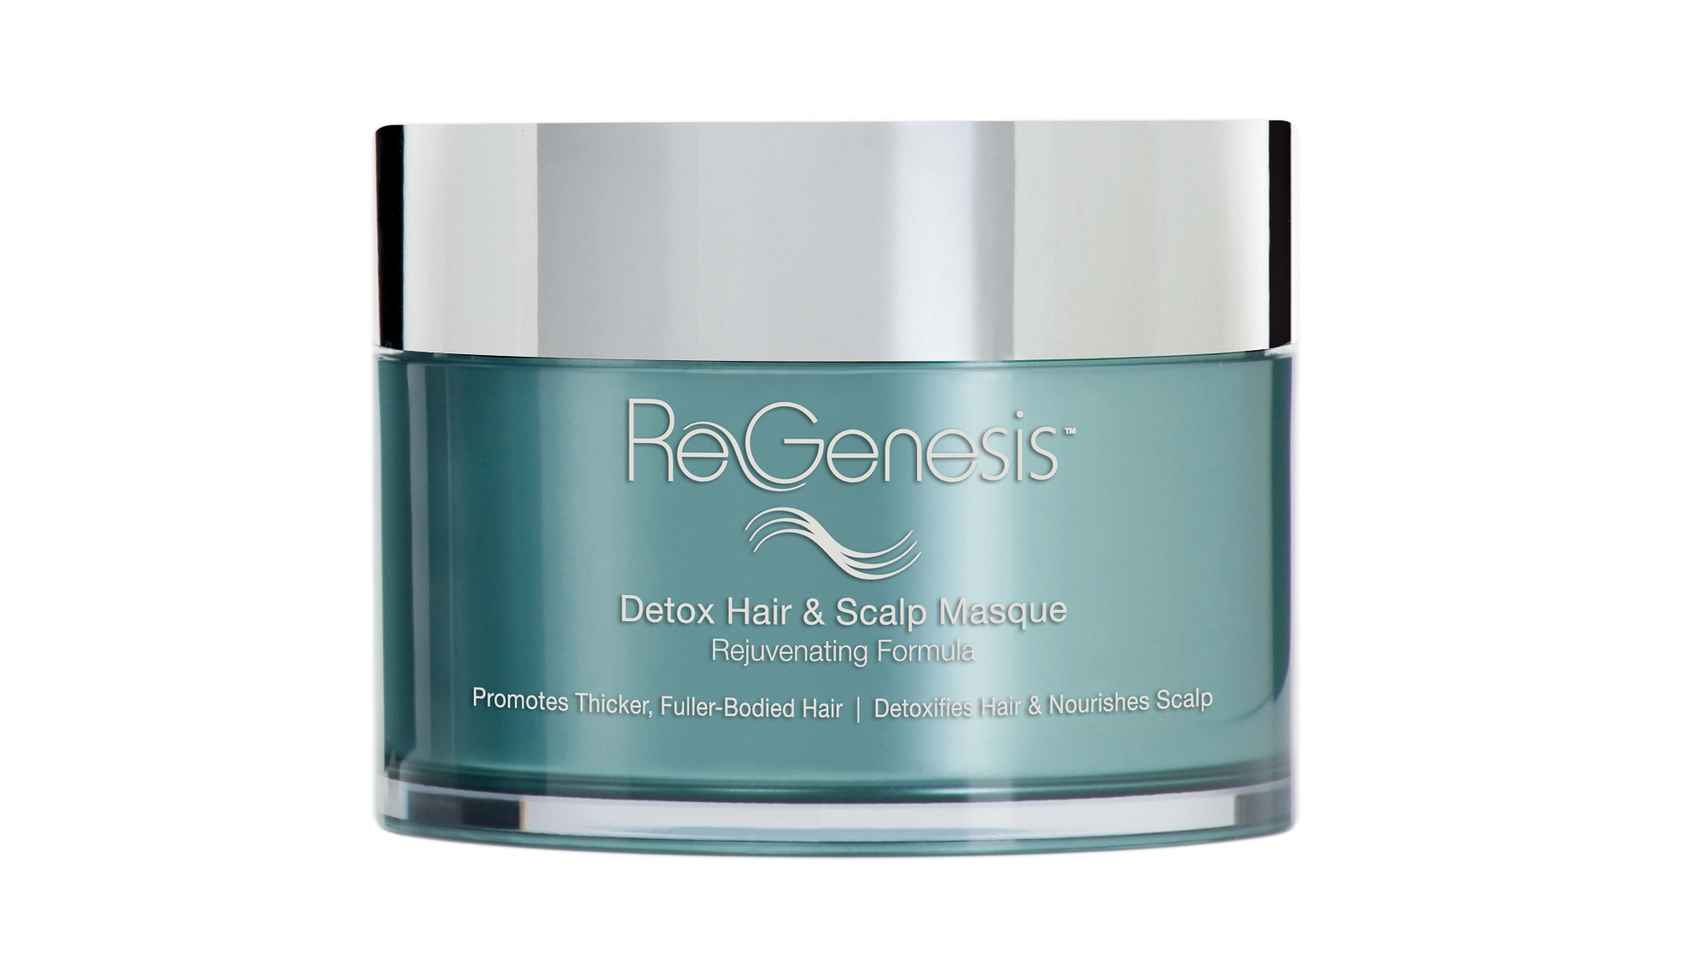 ReGenesis Detox Hair & Scalp Masque.